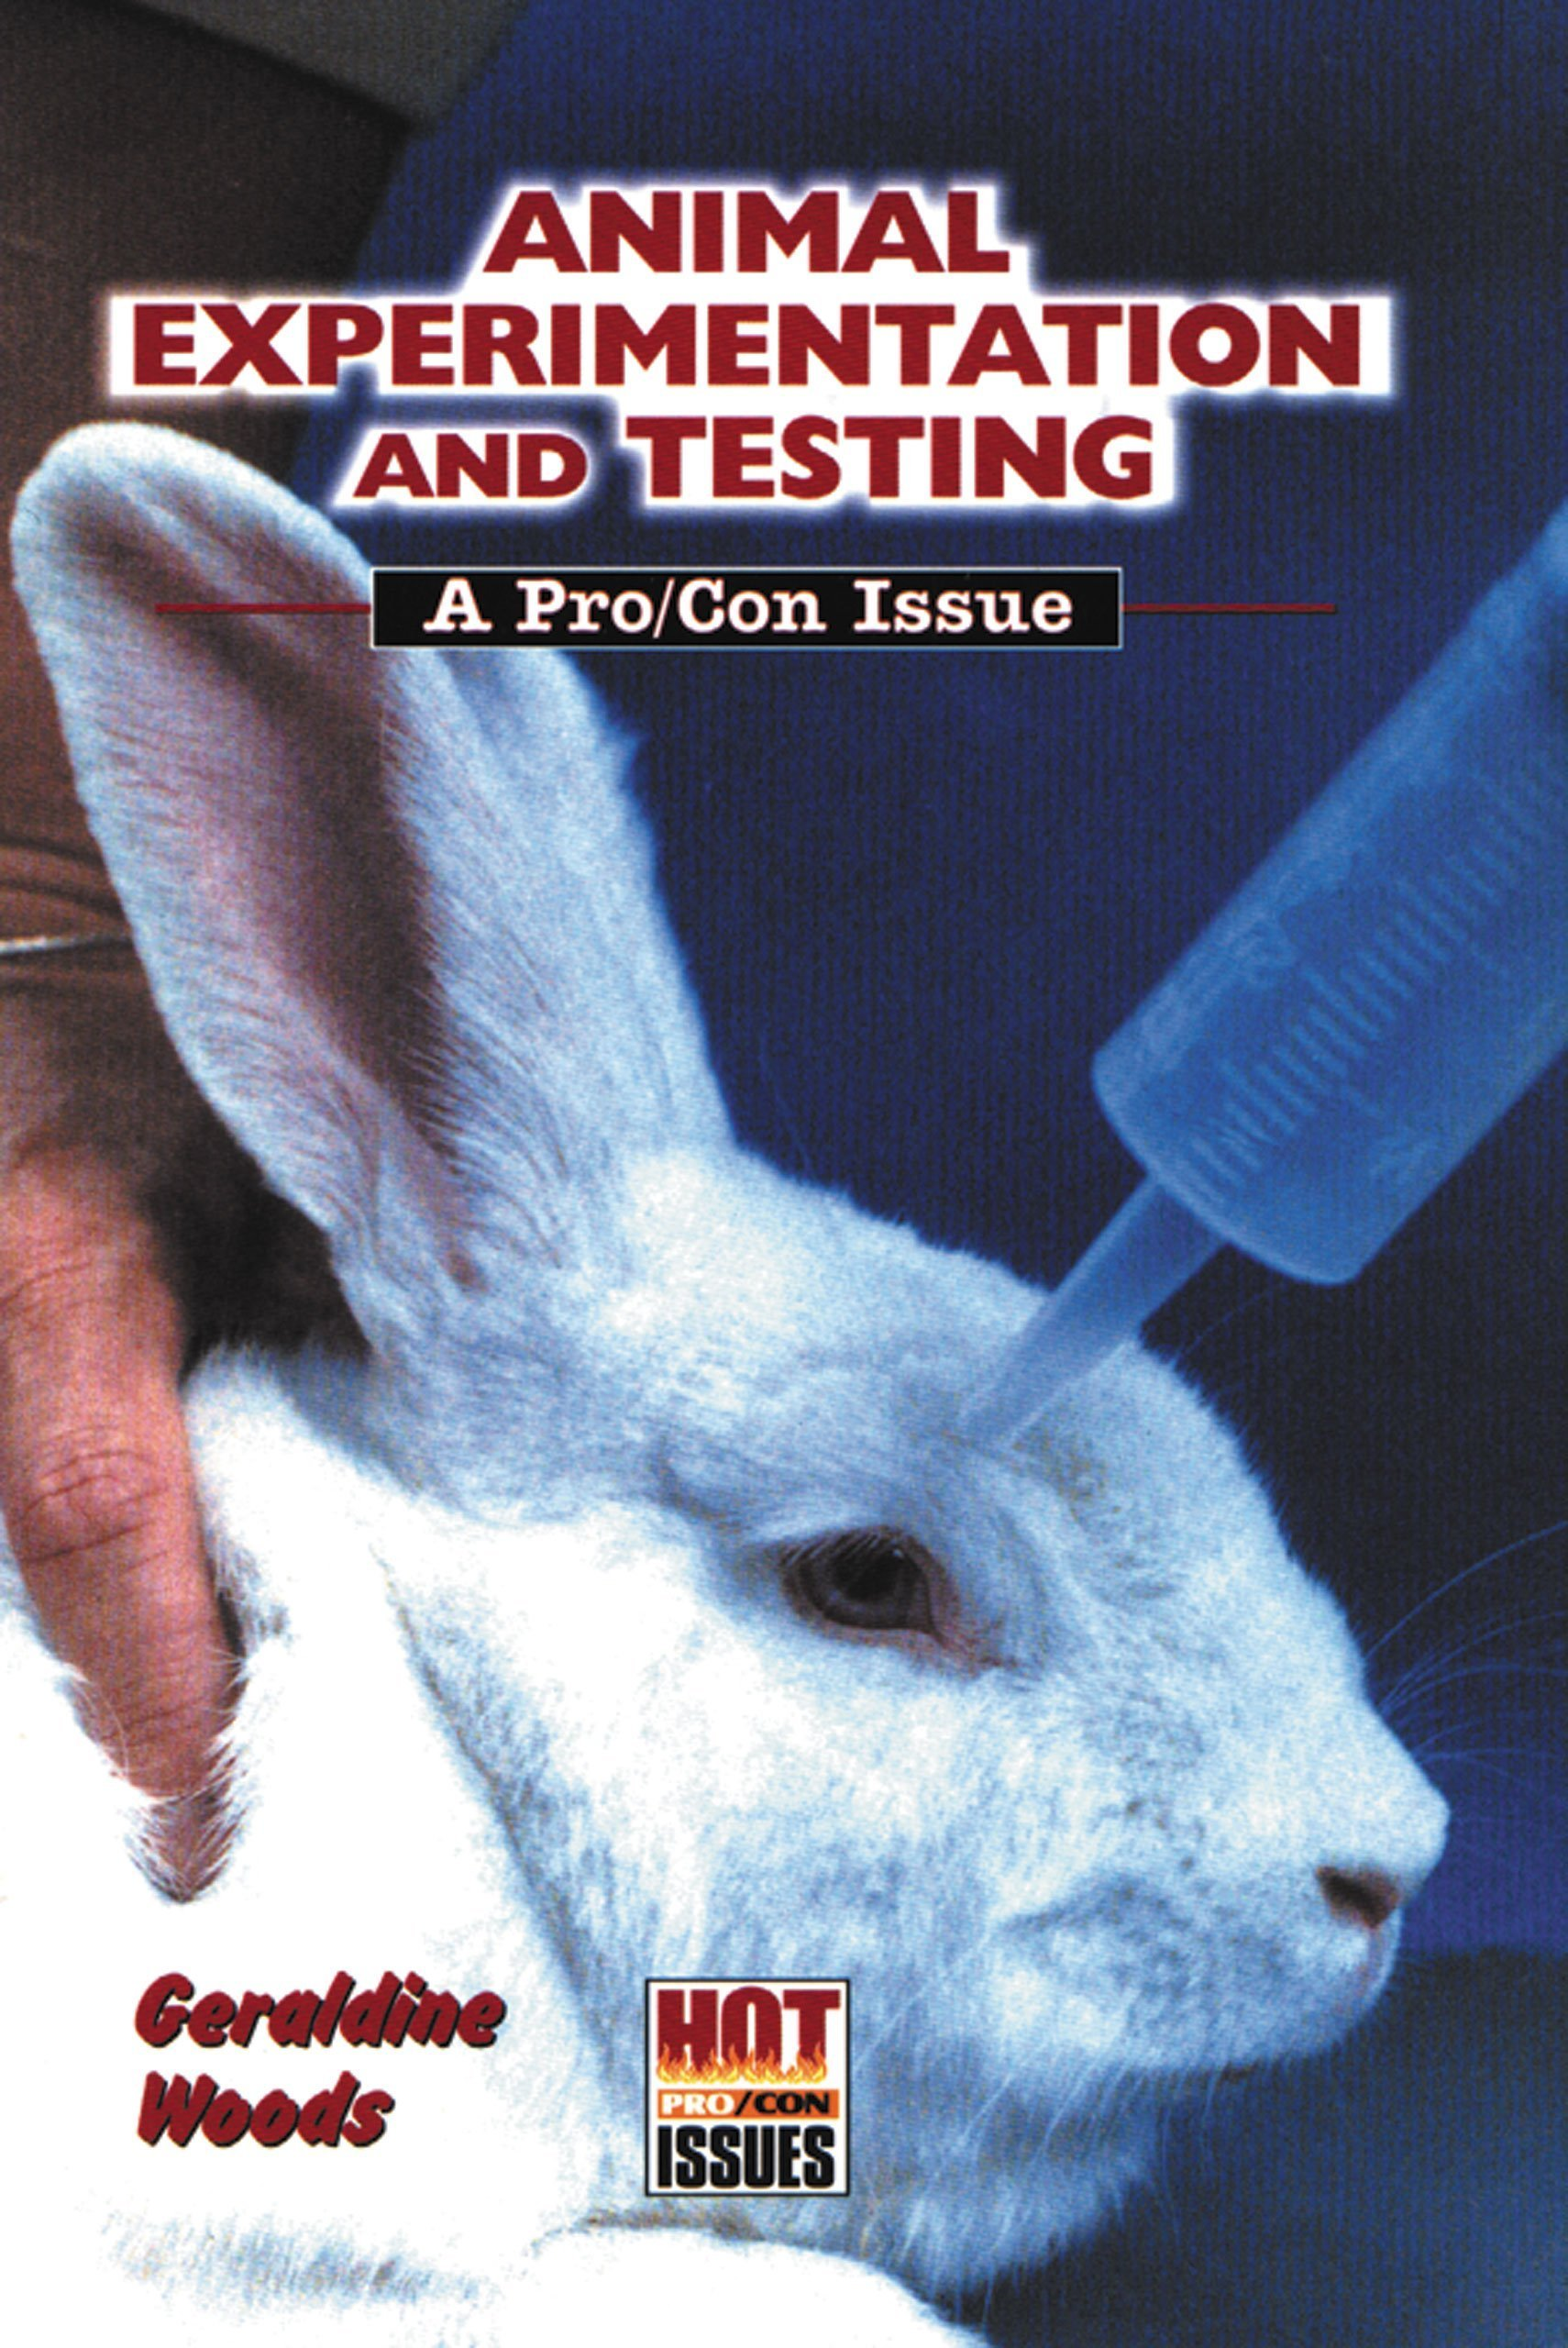 Amazon.com: Animal Experimentation and Testing: A Pro/Con Issue ...